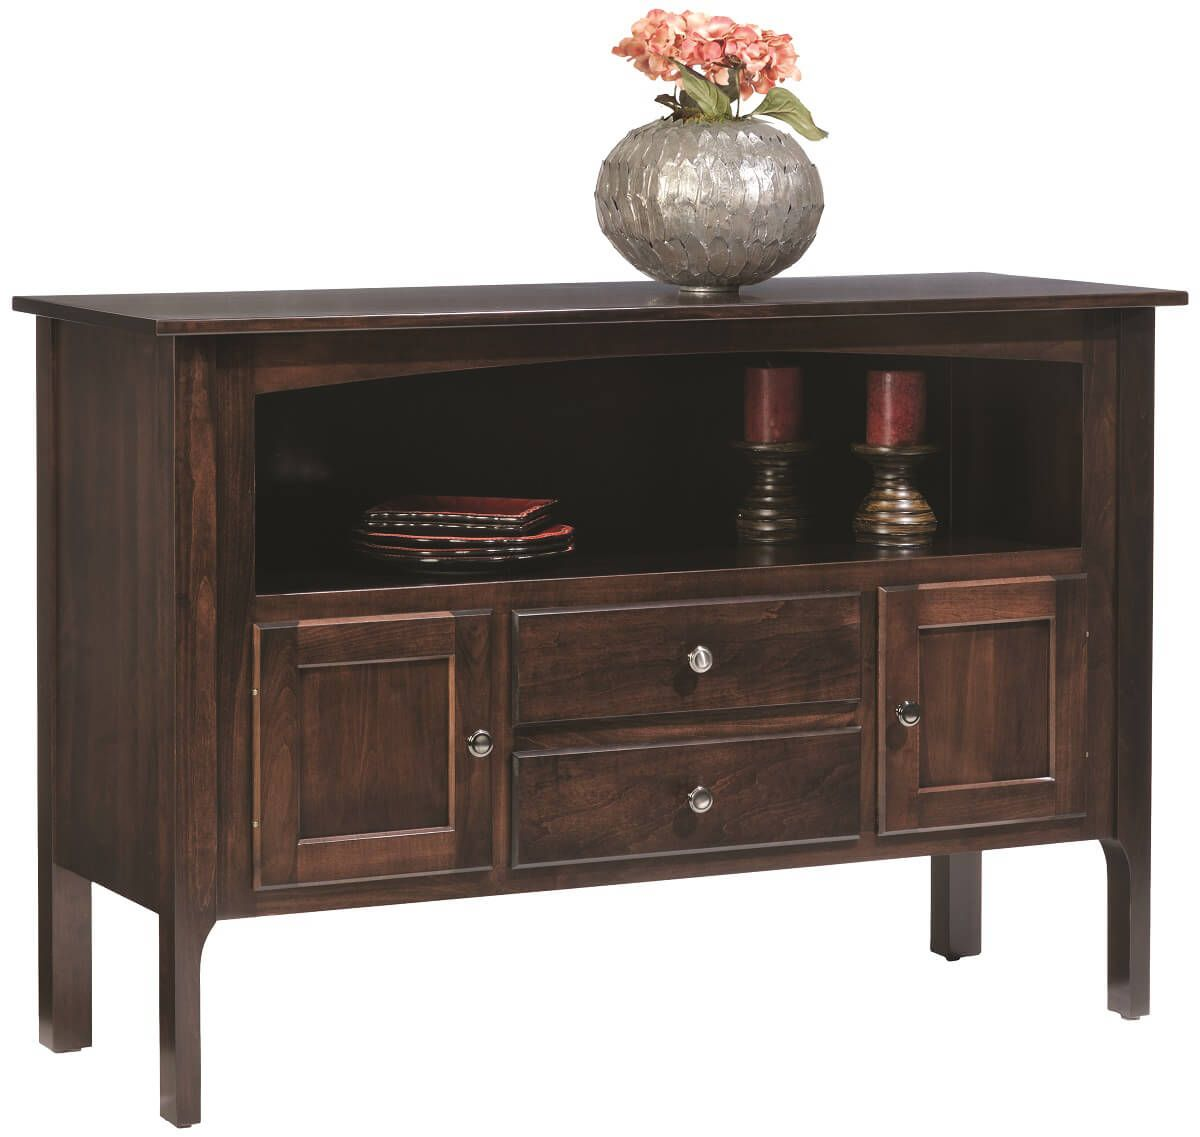 Elisee Shaker Sideboard in Brown Maple